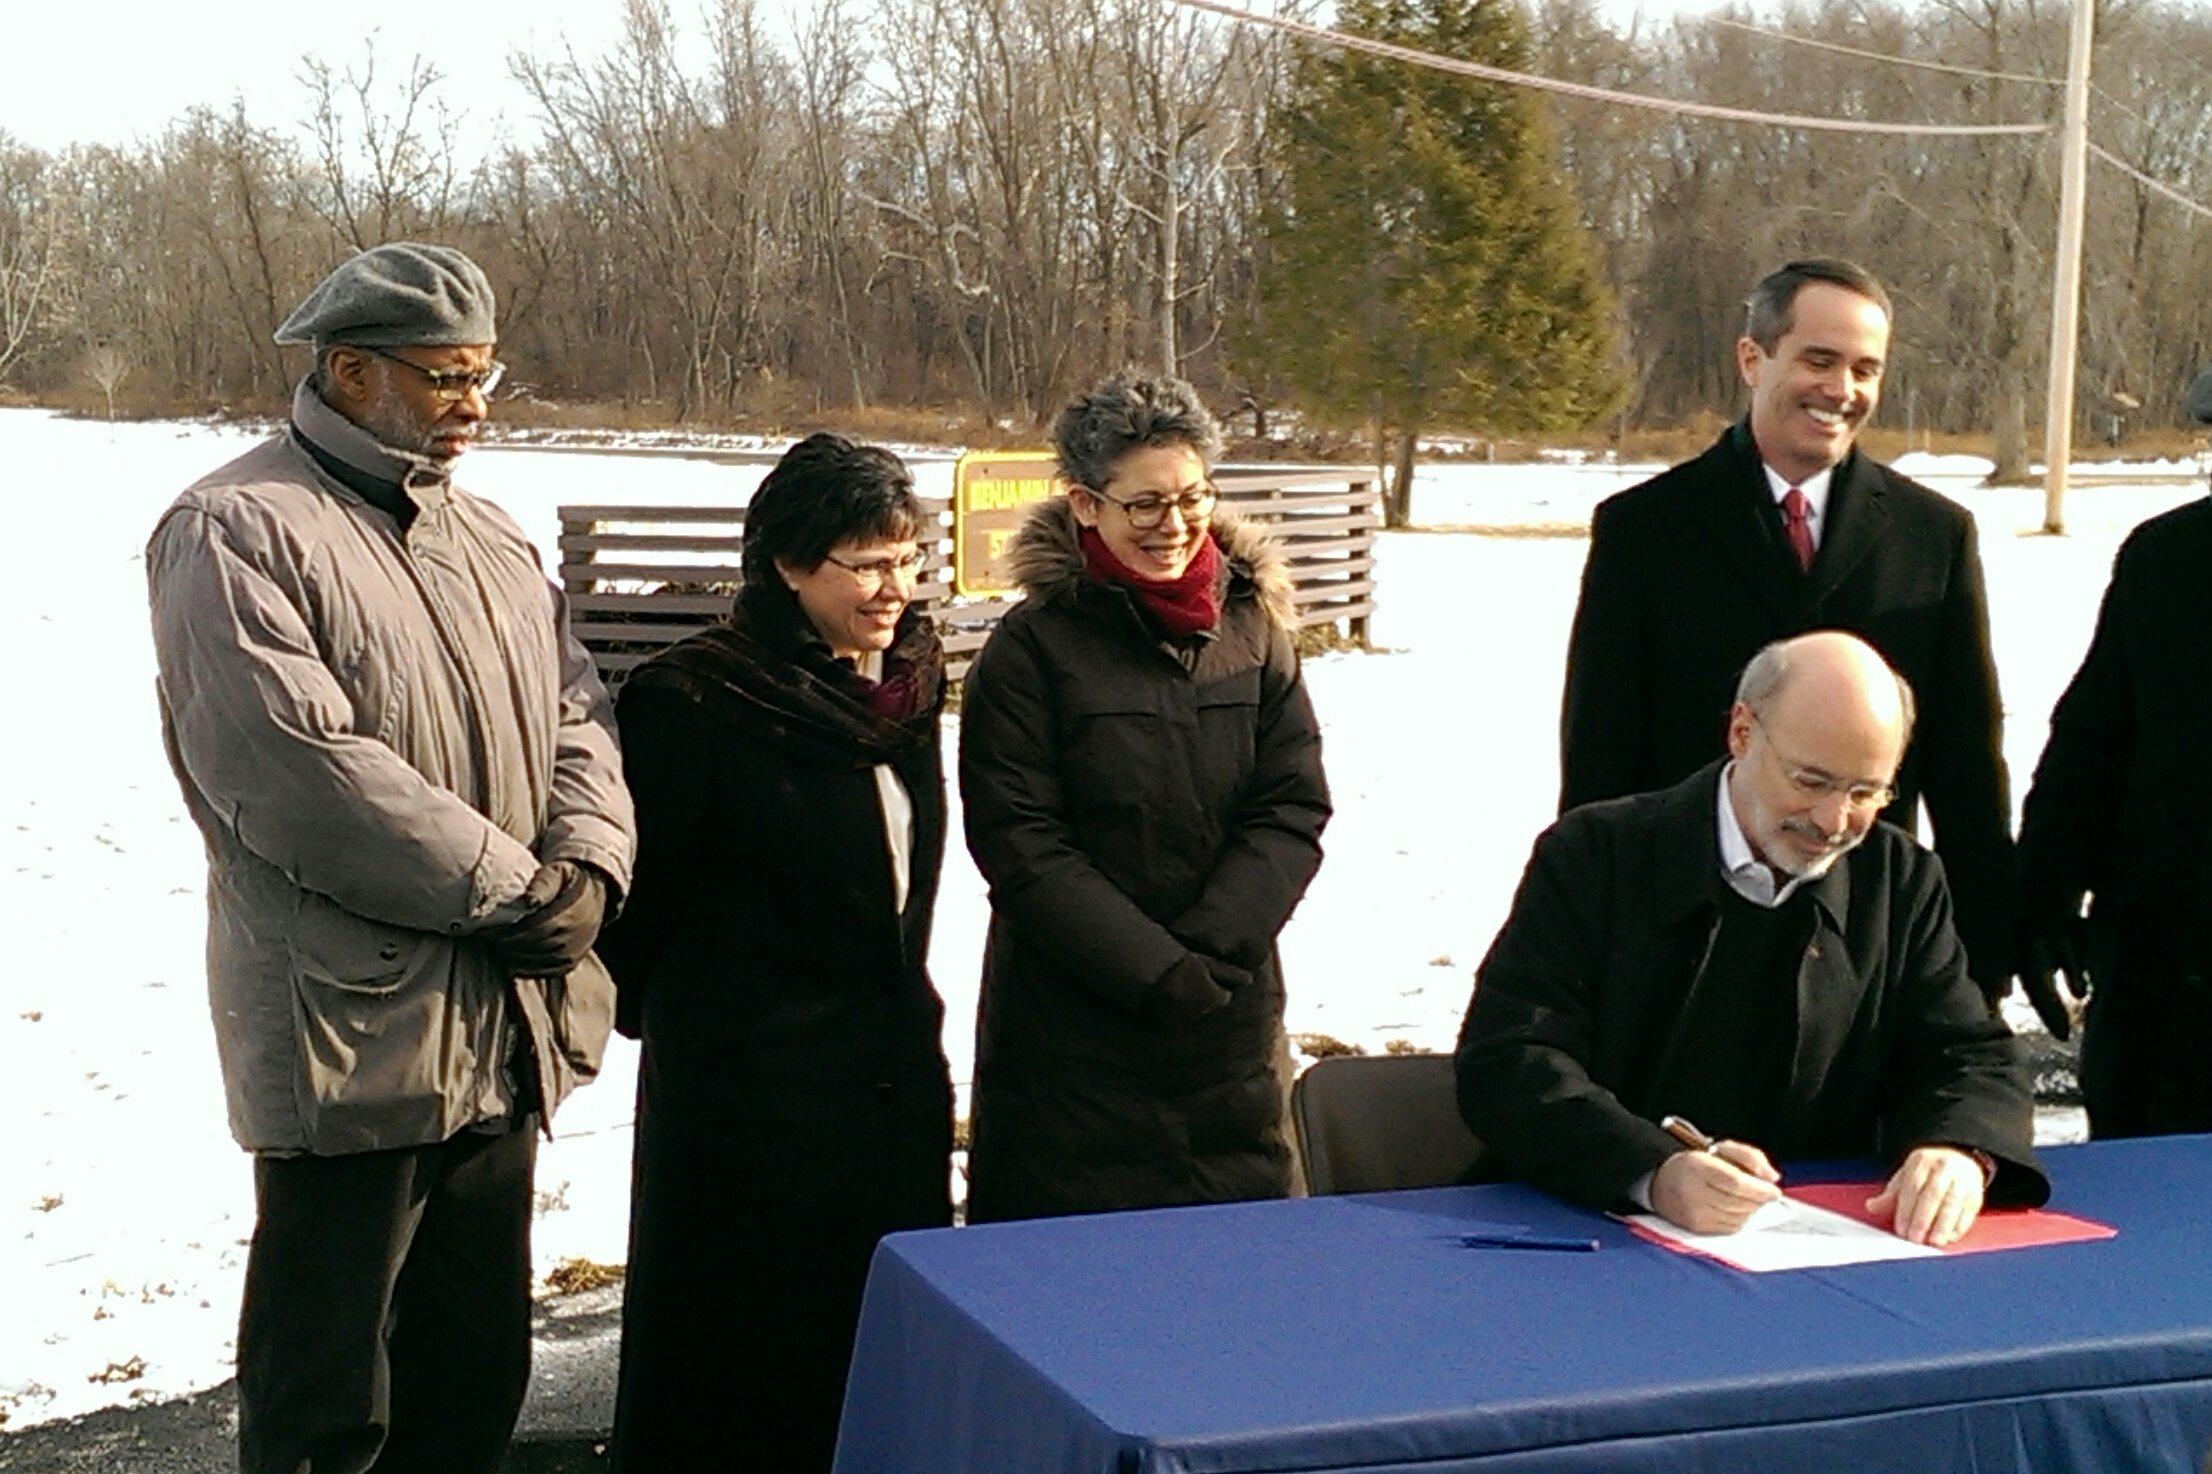 January 29, 2015: I was proud to support Governor Wolf as he signed an executive order restoring the ban on drilling licenses on state land in Philadelphia's Benjamin Rush State Park.